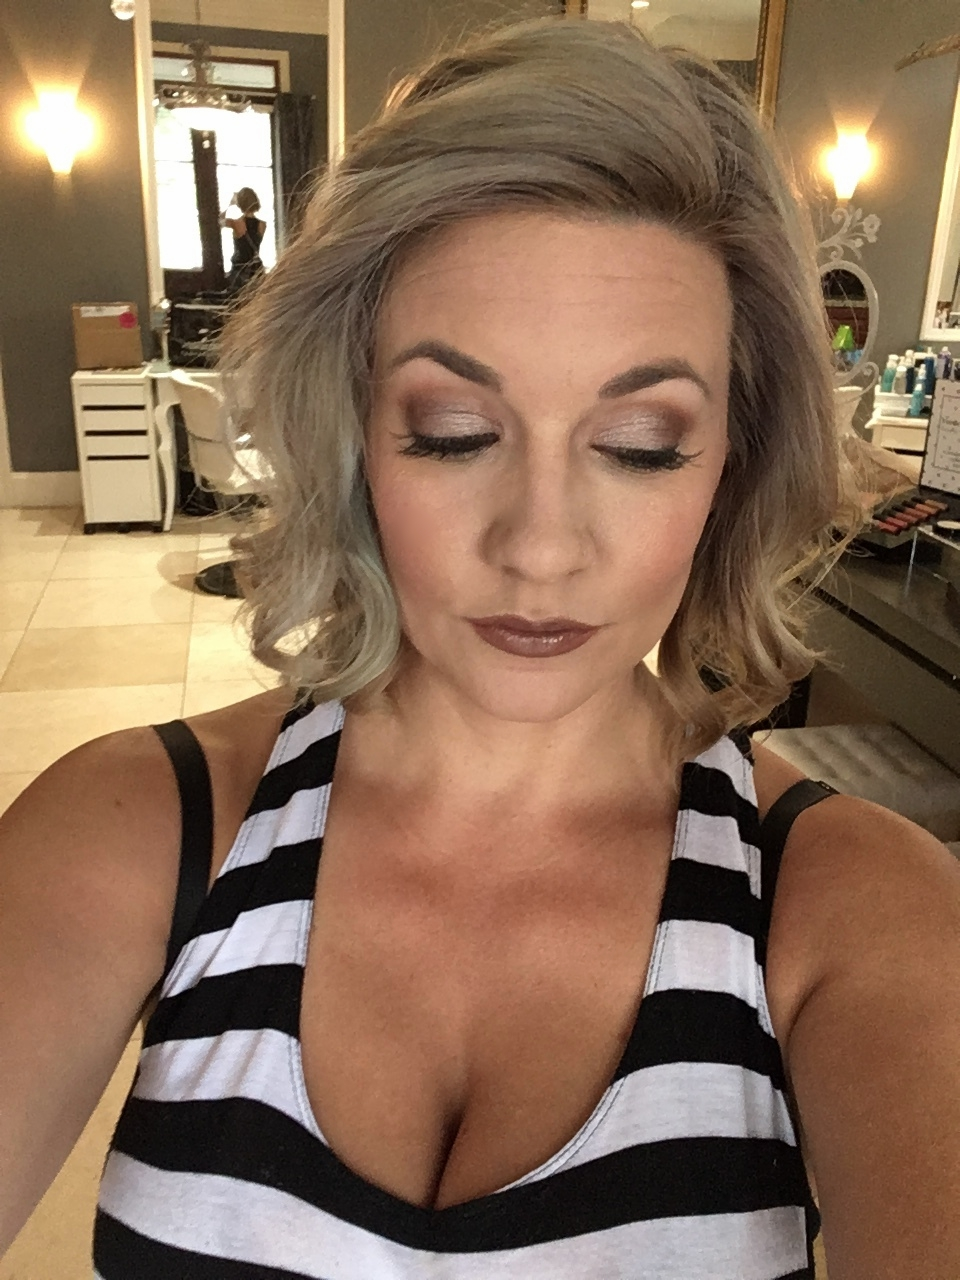 Here is the look using these products!